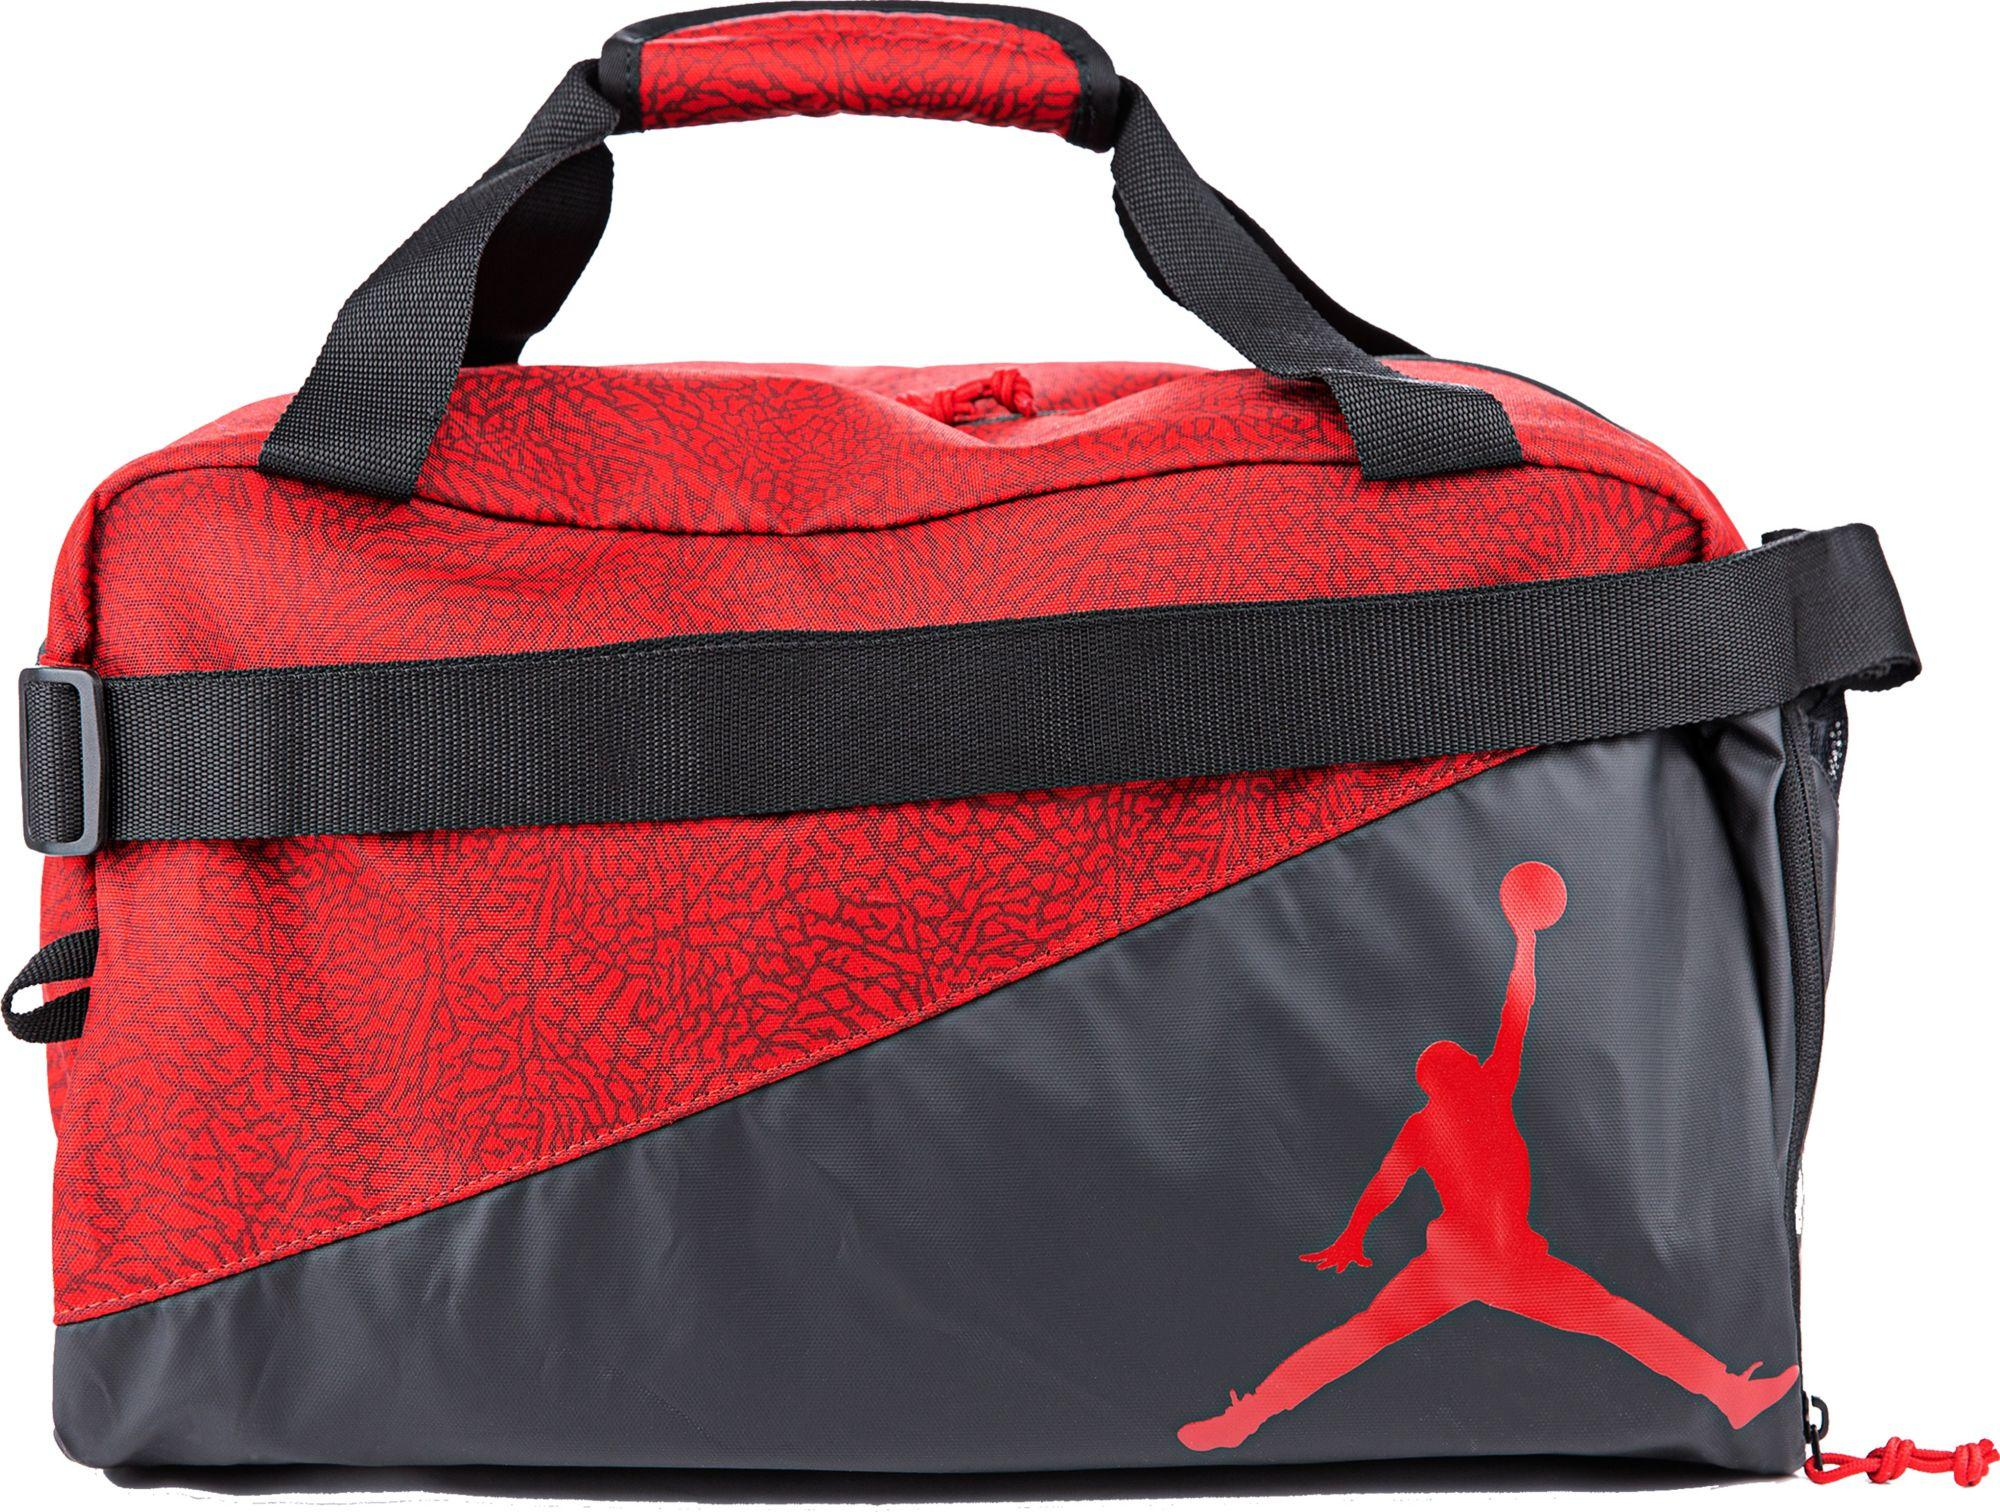 Lyst - Nike Elemental Medium Duffle Bag in Red for Men 361fa87f6eb2a